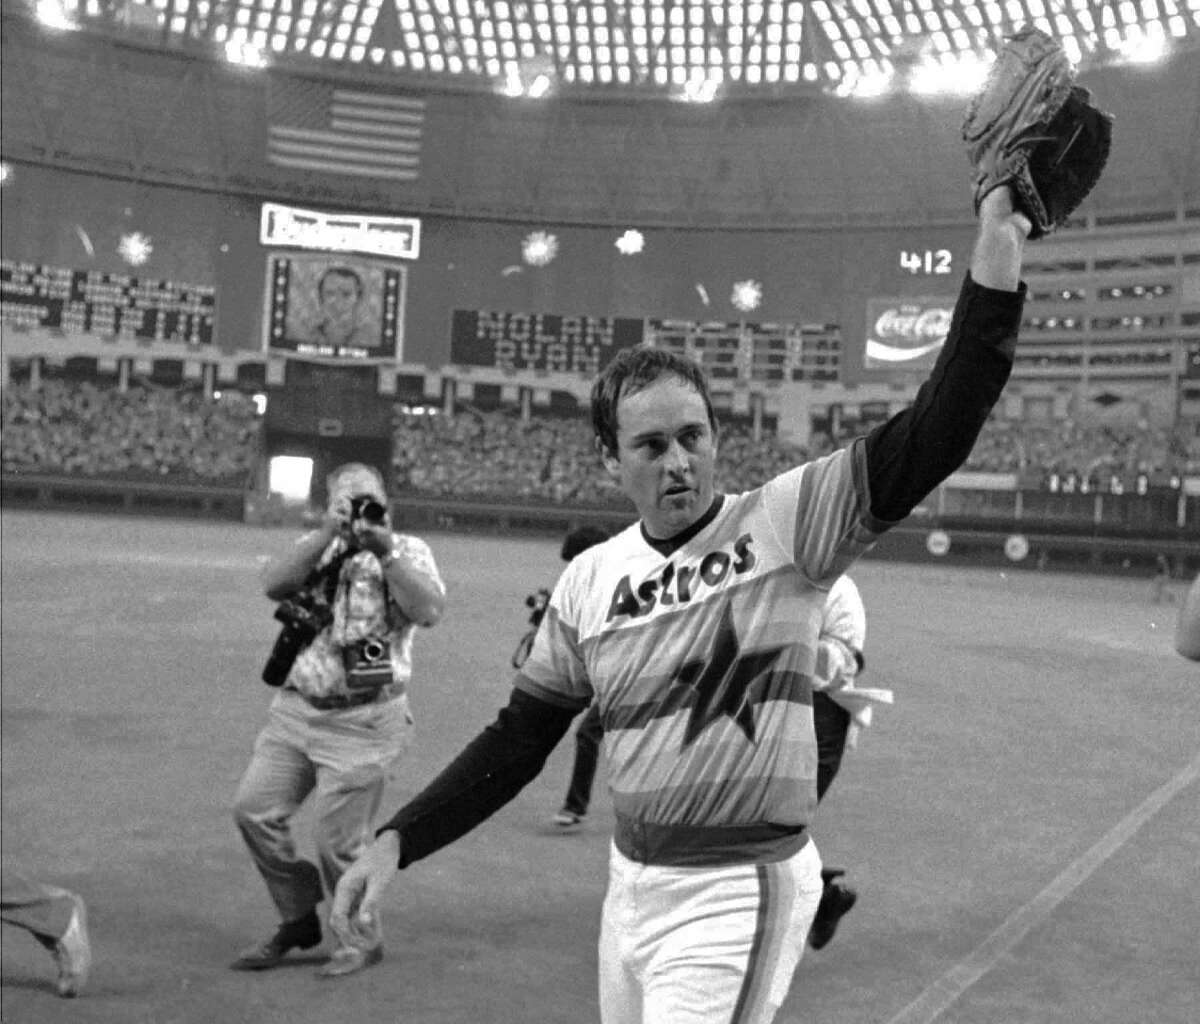 9. Nolan Ryan, RHP (1980-1988) 106-94 with a 3.13 ERA in 1,854.2 IP, with 1,866 Ks, an ERA+ of 110 and 26.2 Wins Above Replacement. On top of giving the franchise boost of credibility when he signed as free agent after the 1979 season, led league in ERA twice (1981, 1987) and helped Astros capture two division titles.